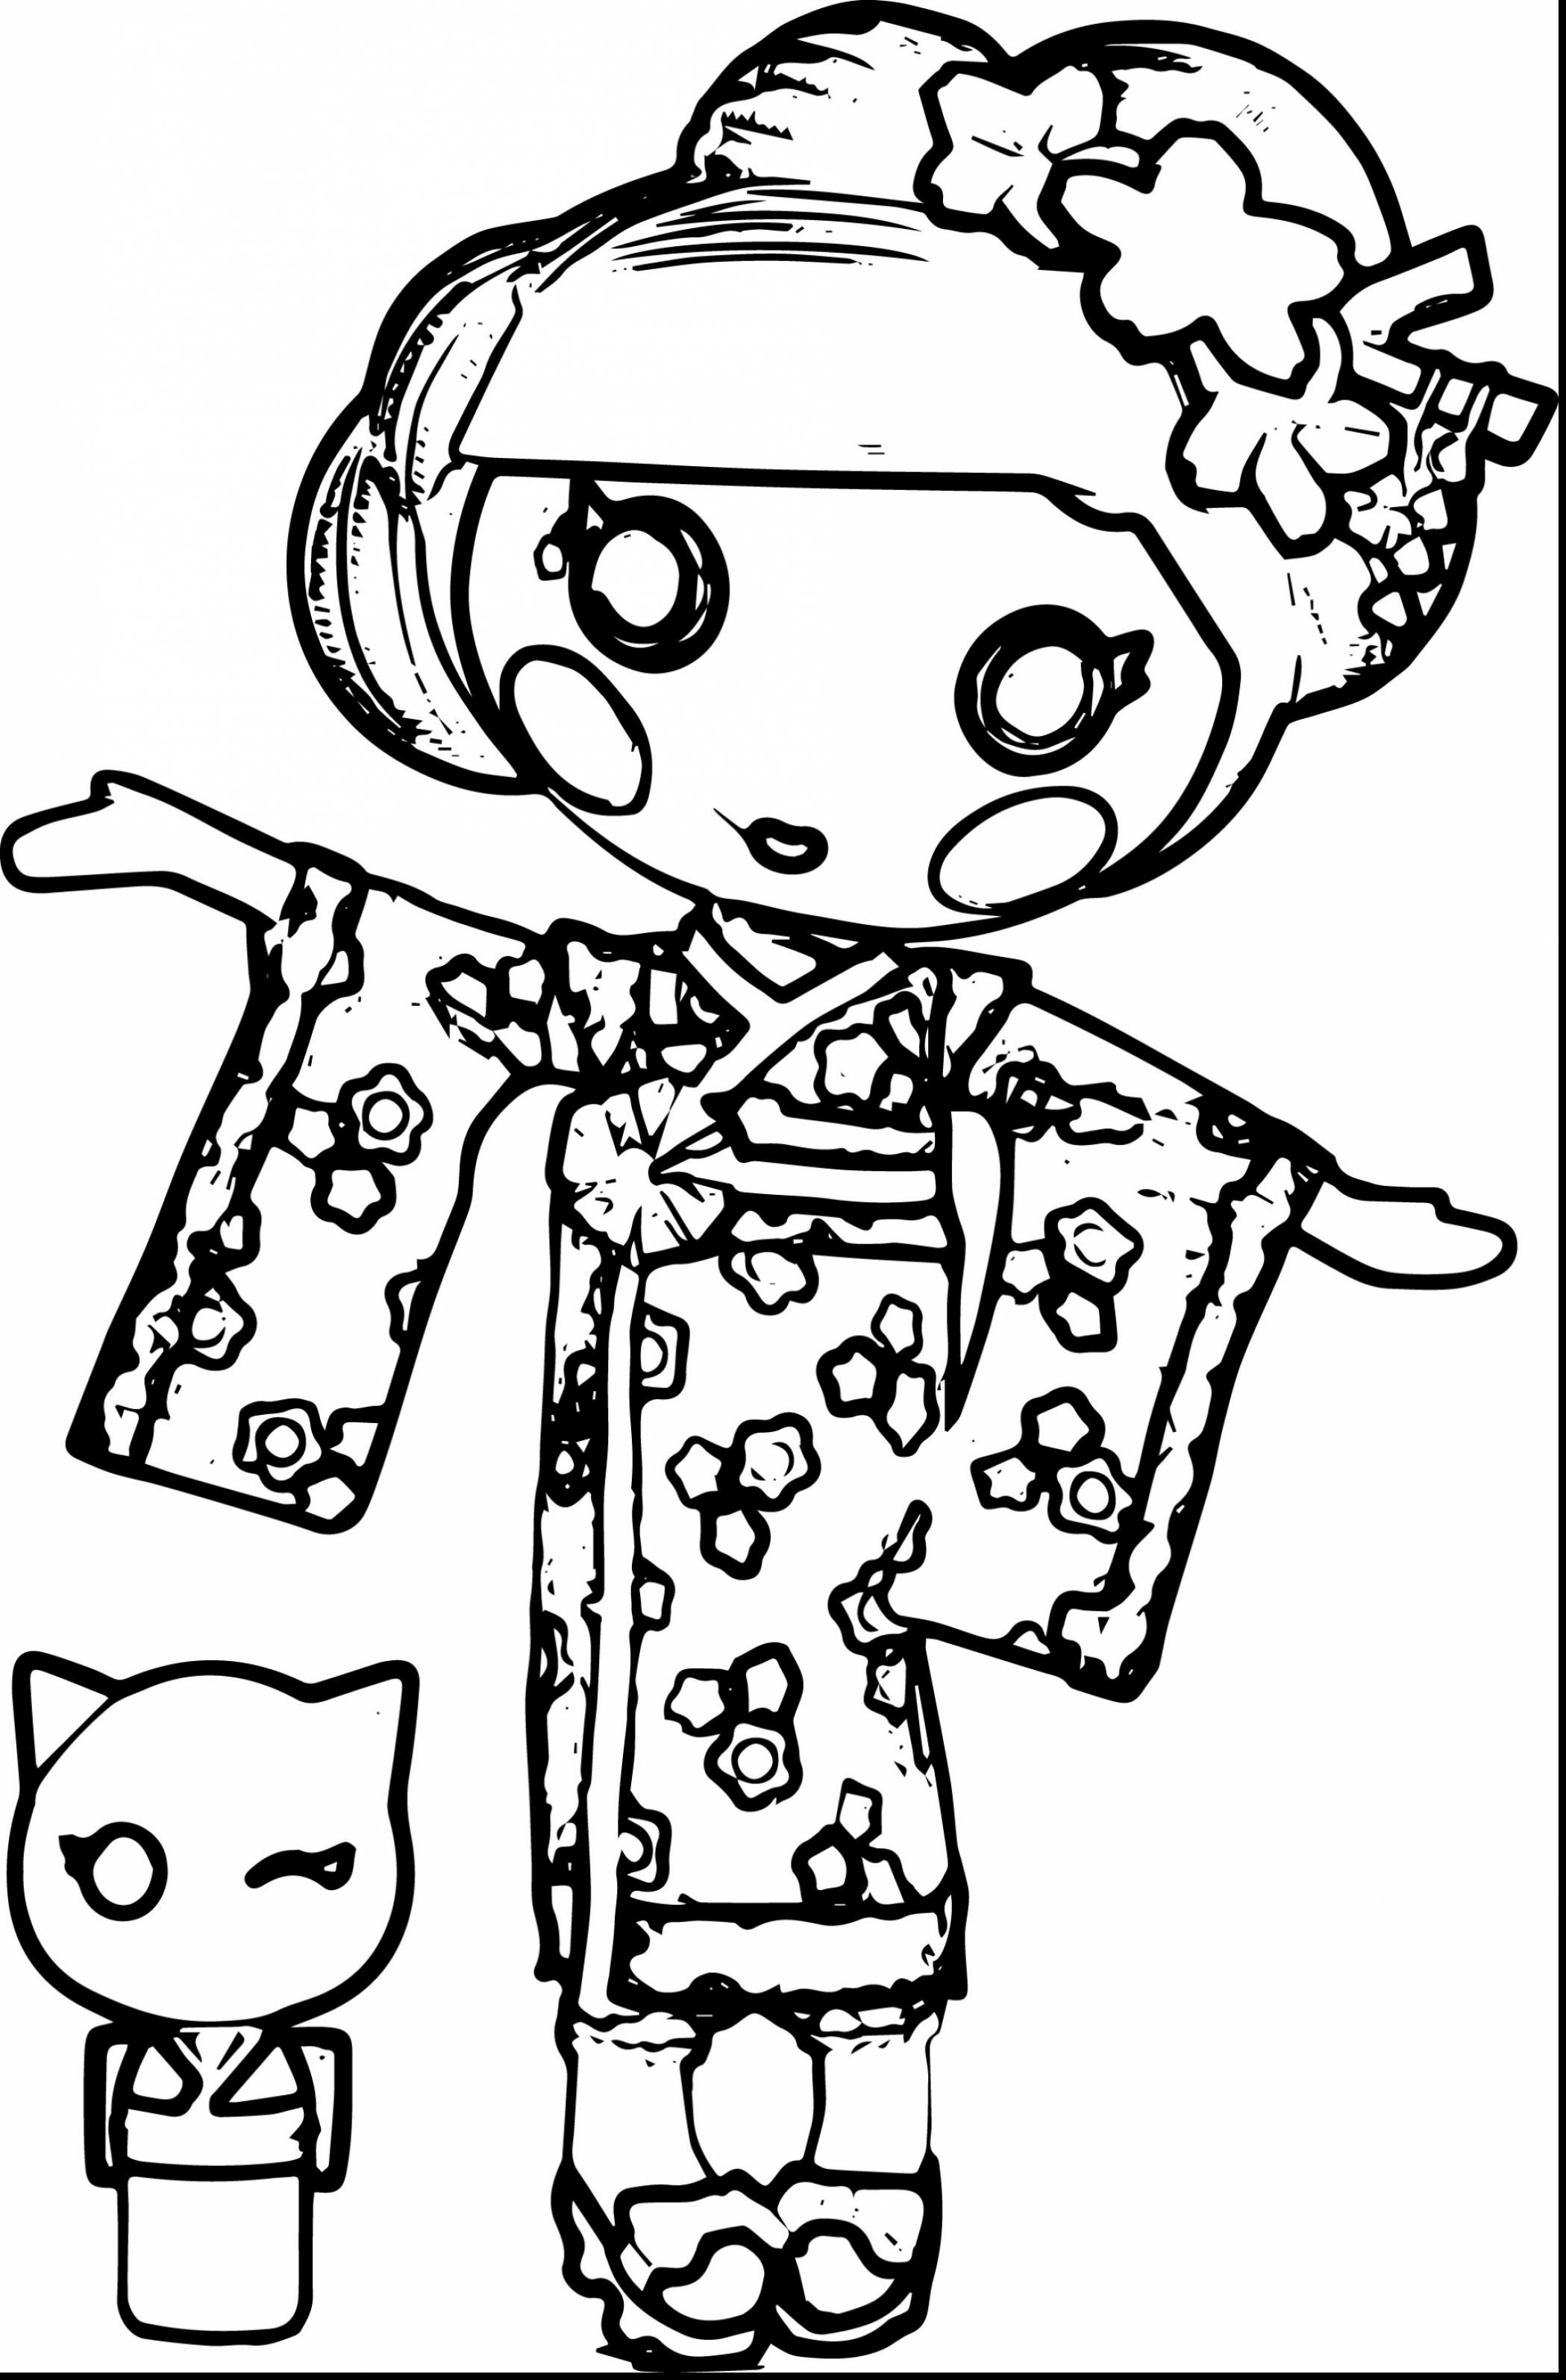 how to draw a lalaloopsy doll top 20 lalaloopsy coloring pages your toddler will love doll lalaloopsy draw a how to